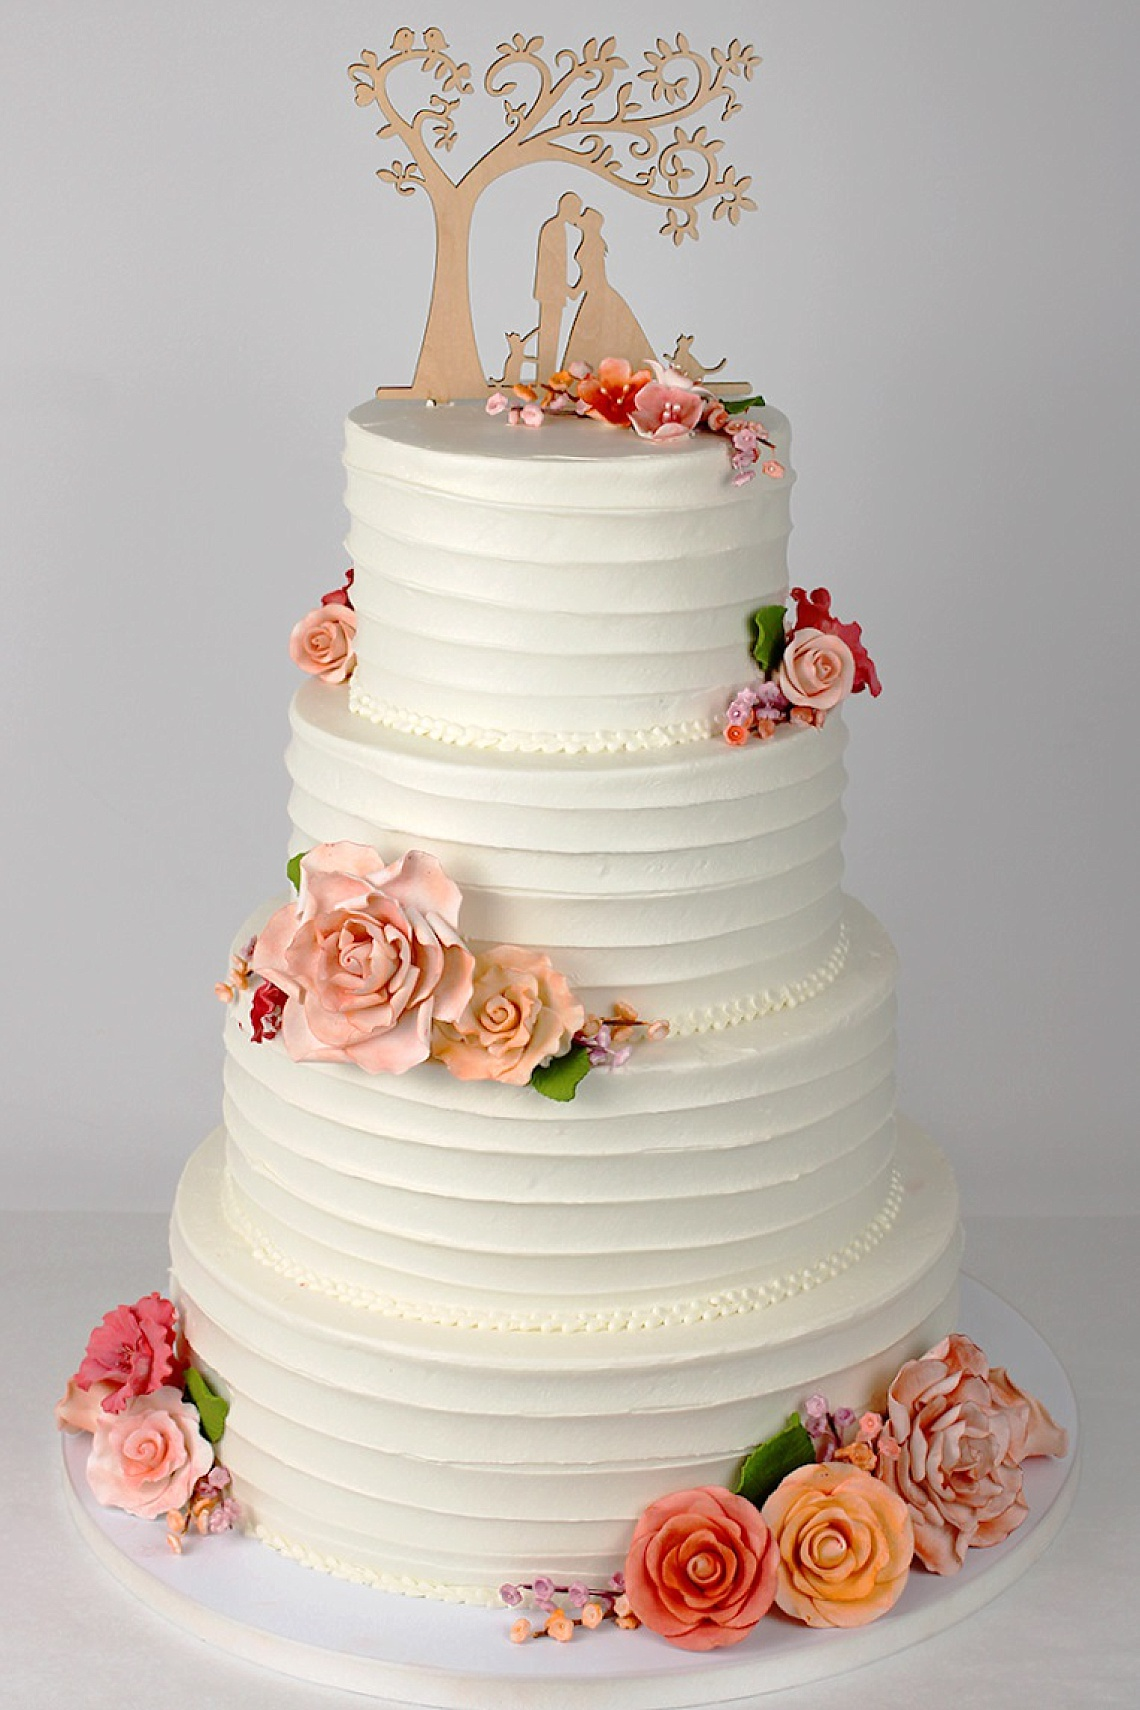 A Gluten Free And Kosher Pareve Wedding Is A Piece Of Cake With By The Way Bakery Smashing The Glass Jewish Wedding Blog